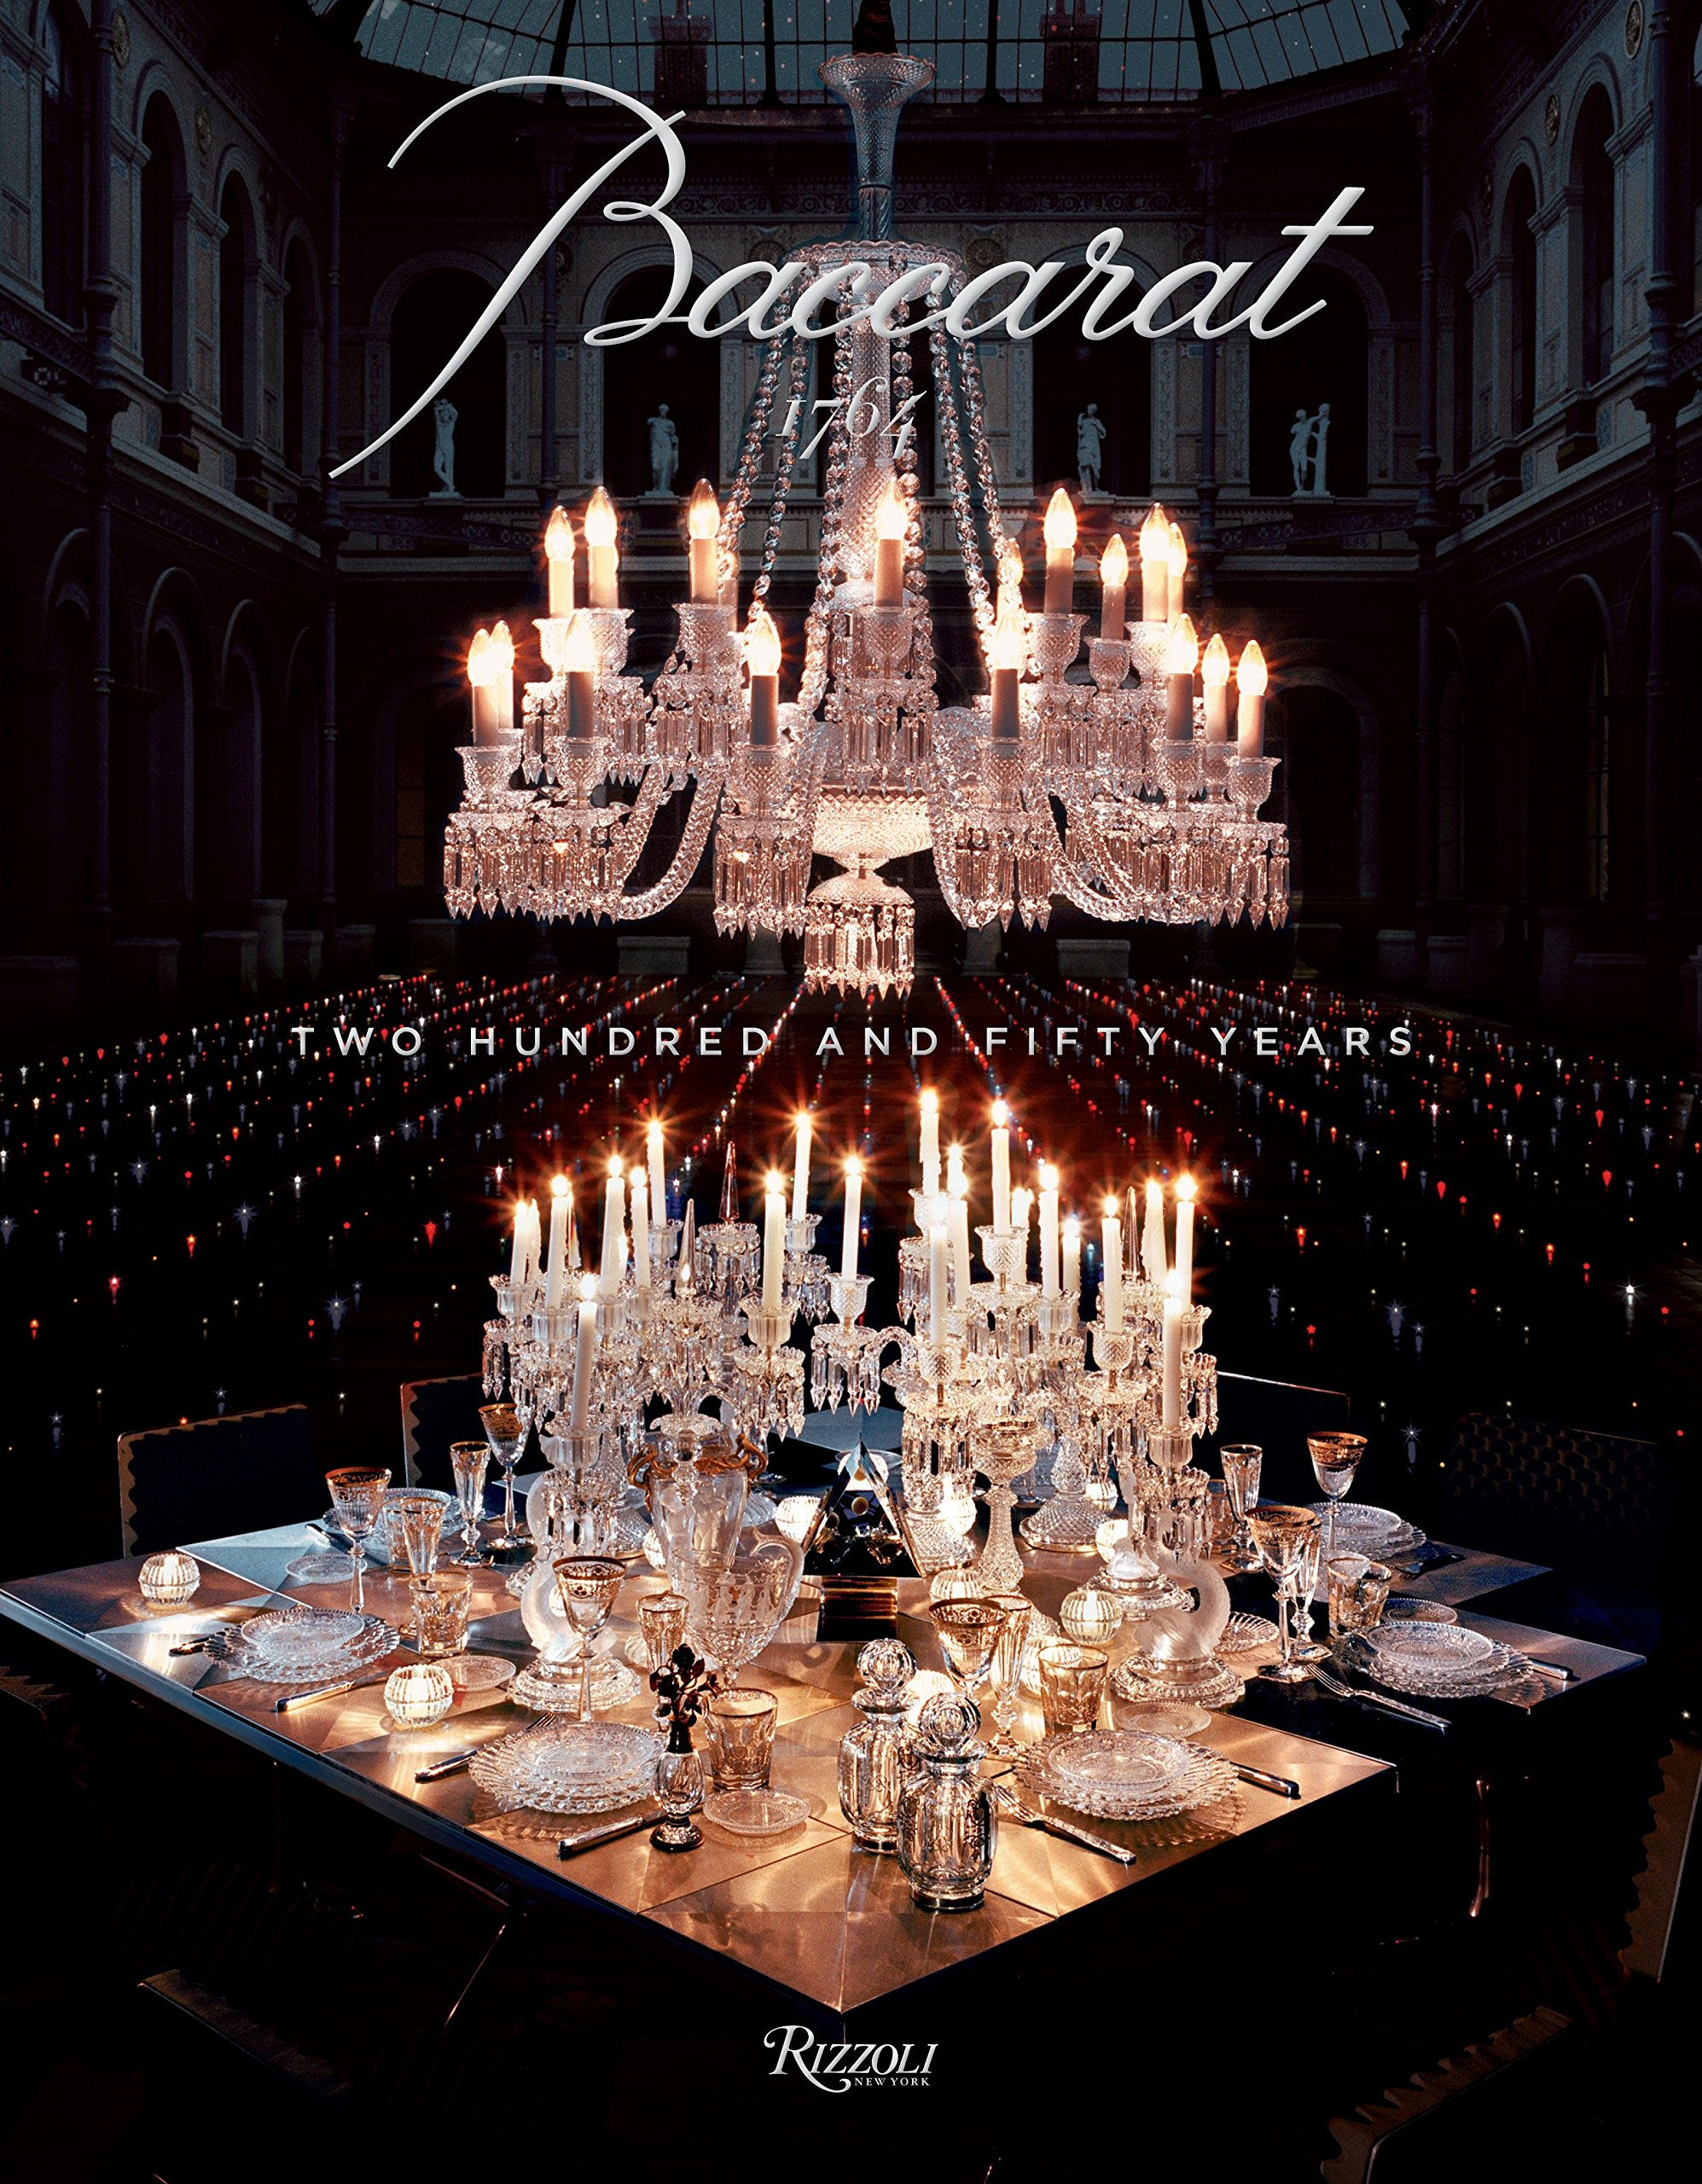 Baccarat: Two Hundred and Fifty Years pdf